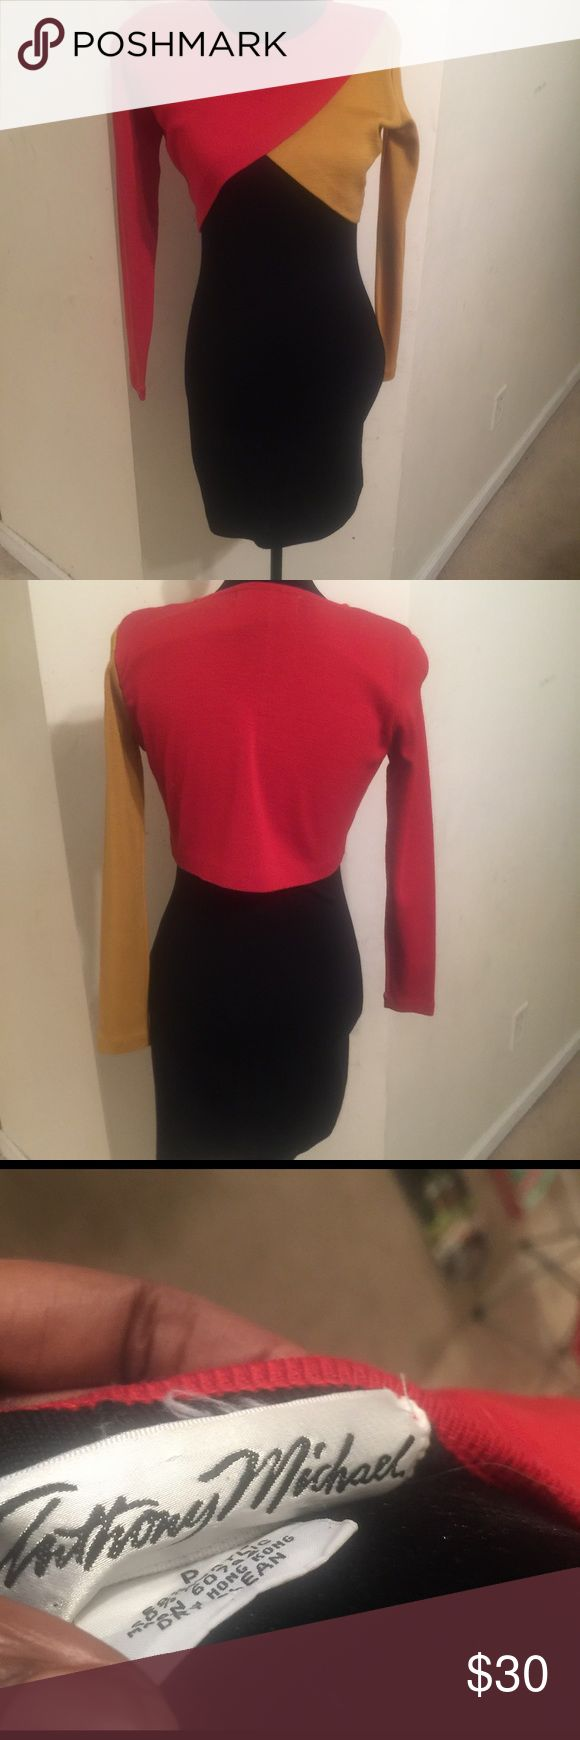 Color Block Bodycon Dress Early 90s style bodycon dress is awesome for any night out! This dress is a petite 6 with a little stretch room. Excellent condition no damage or stains. Anthony Michael Dresses Midi